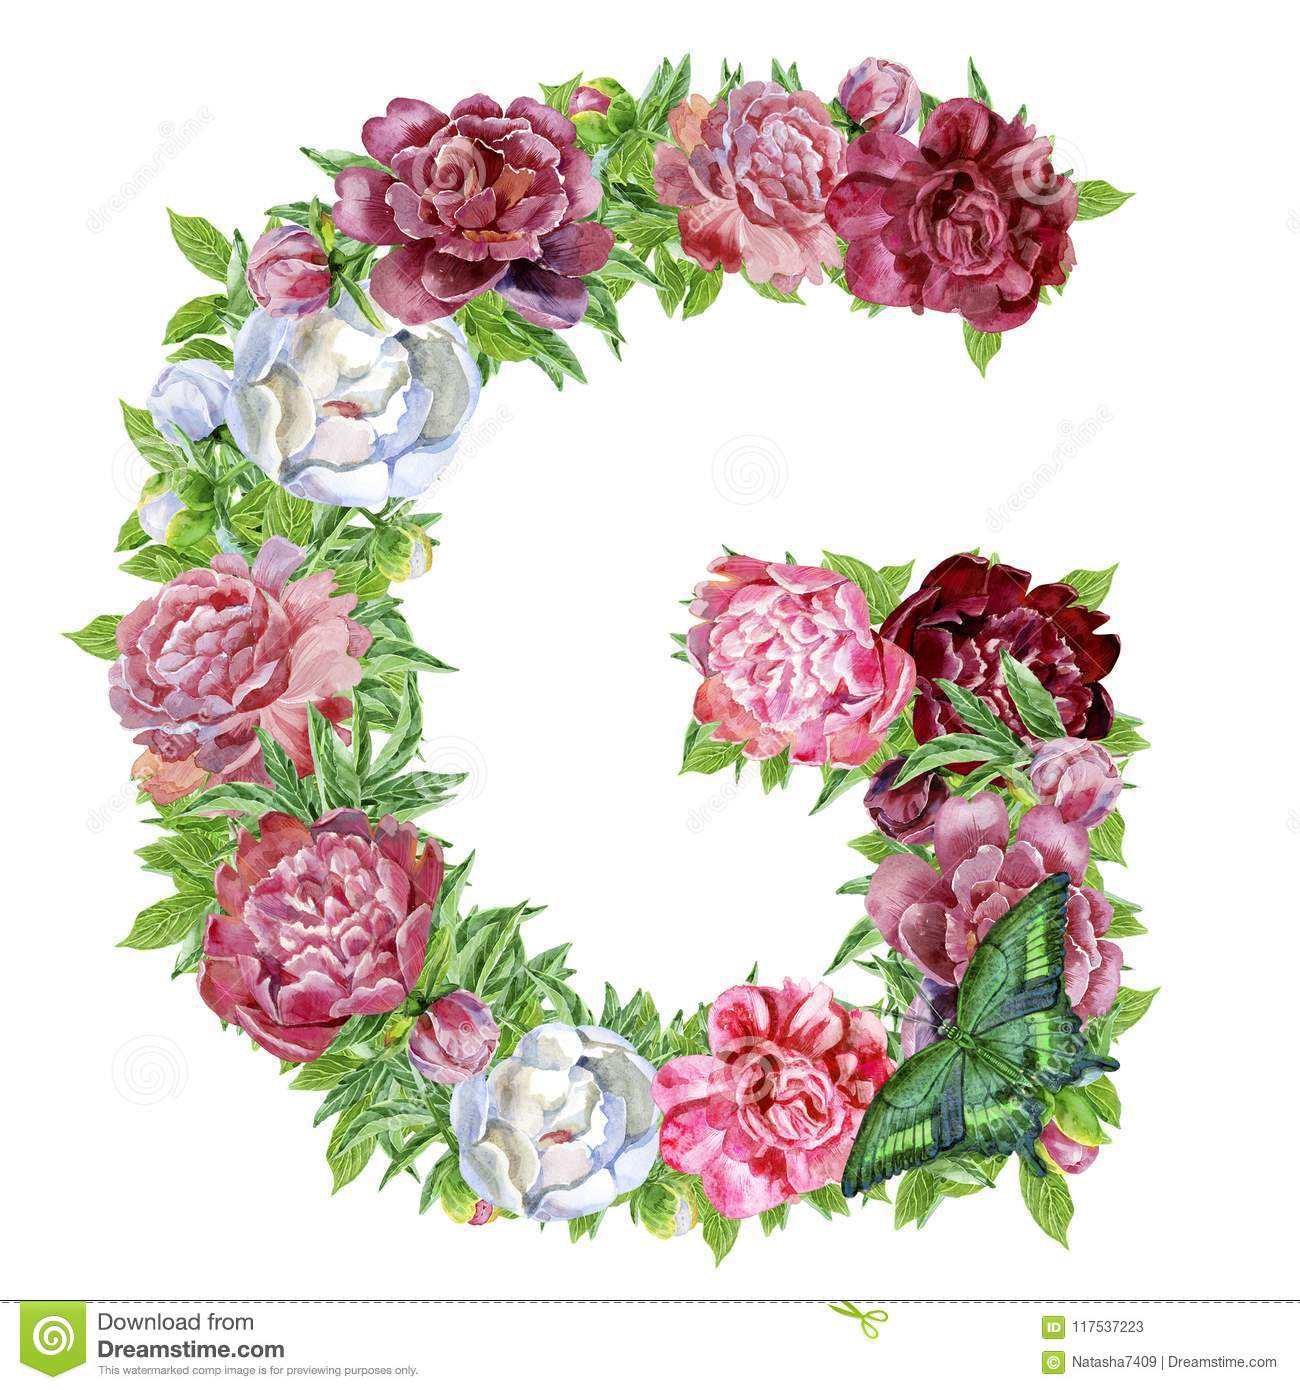 Letter G of watercolor flowers